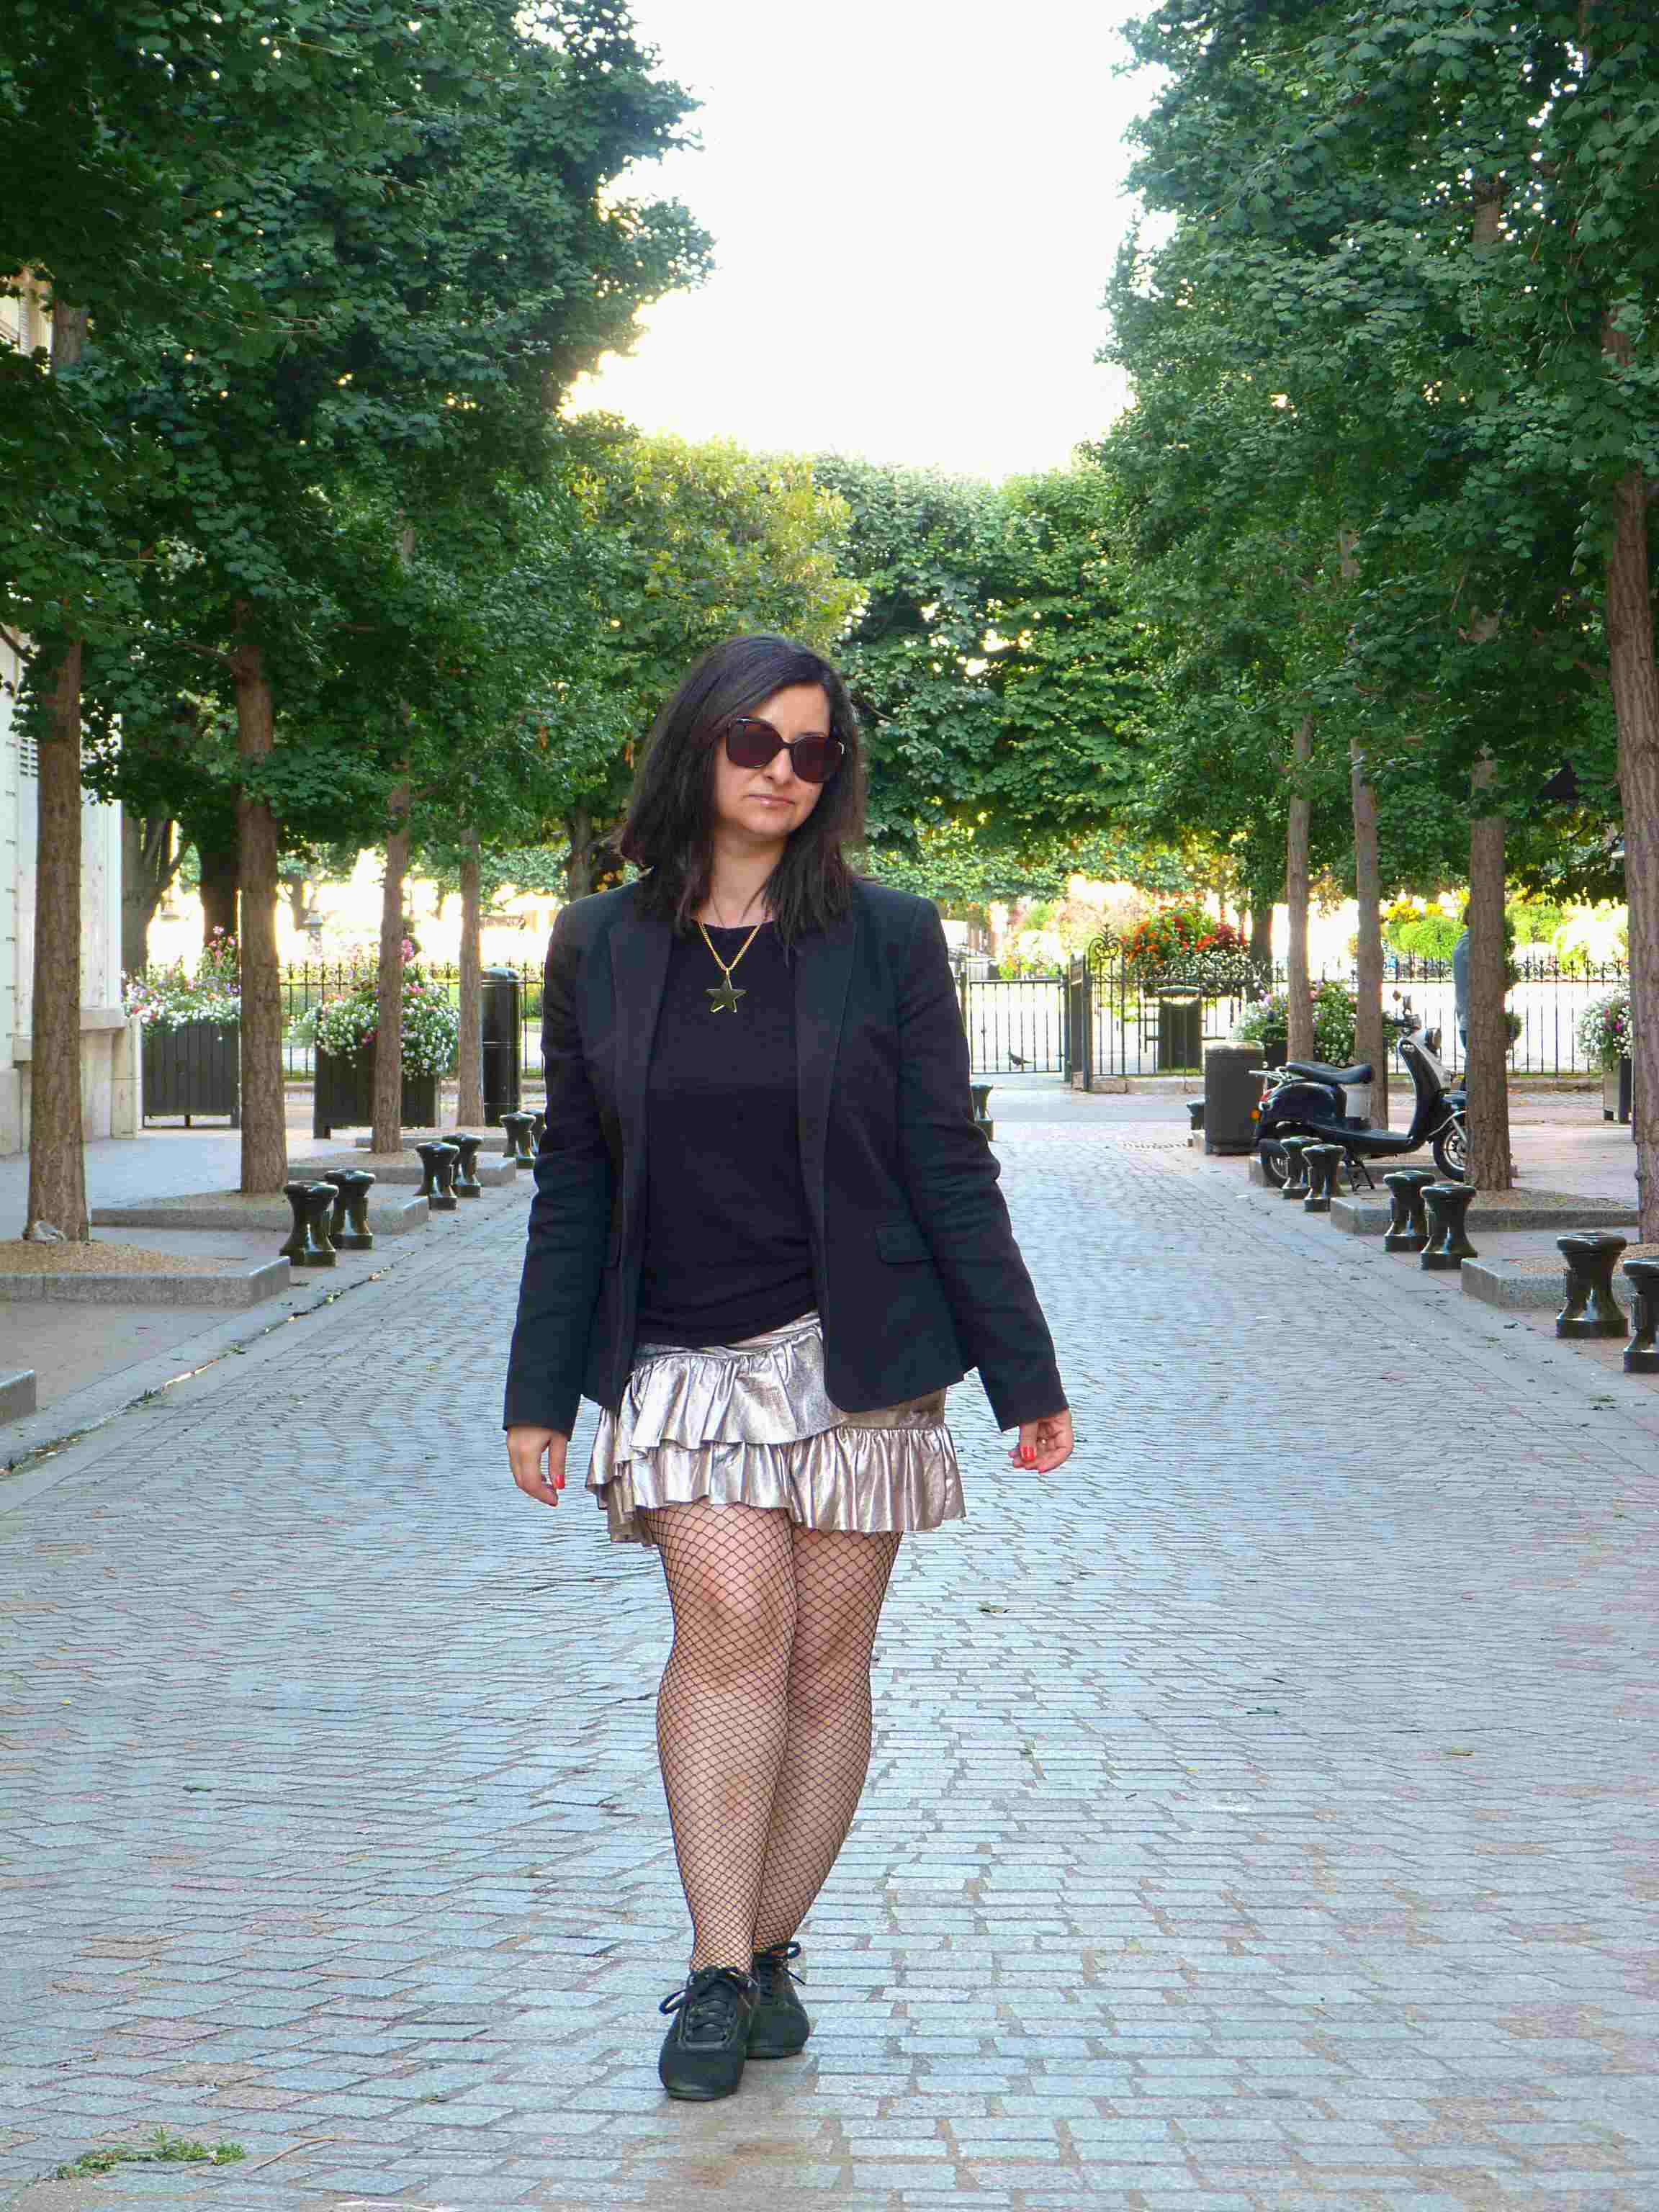 Metallic skirt - Pull & Bear (14)